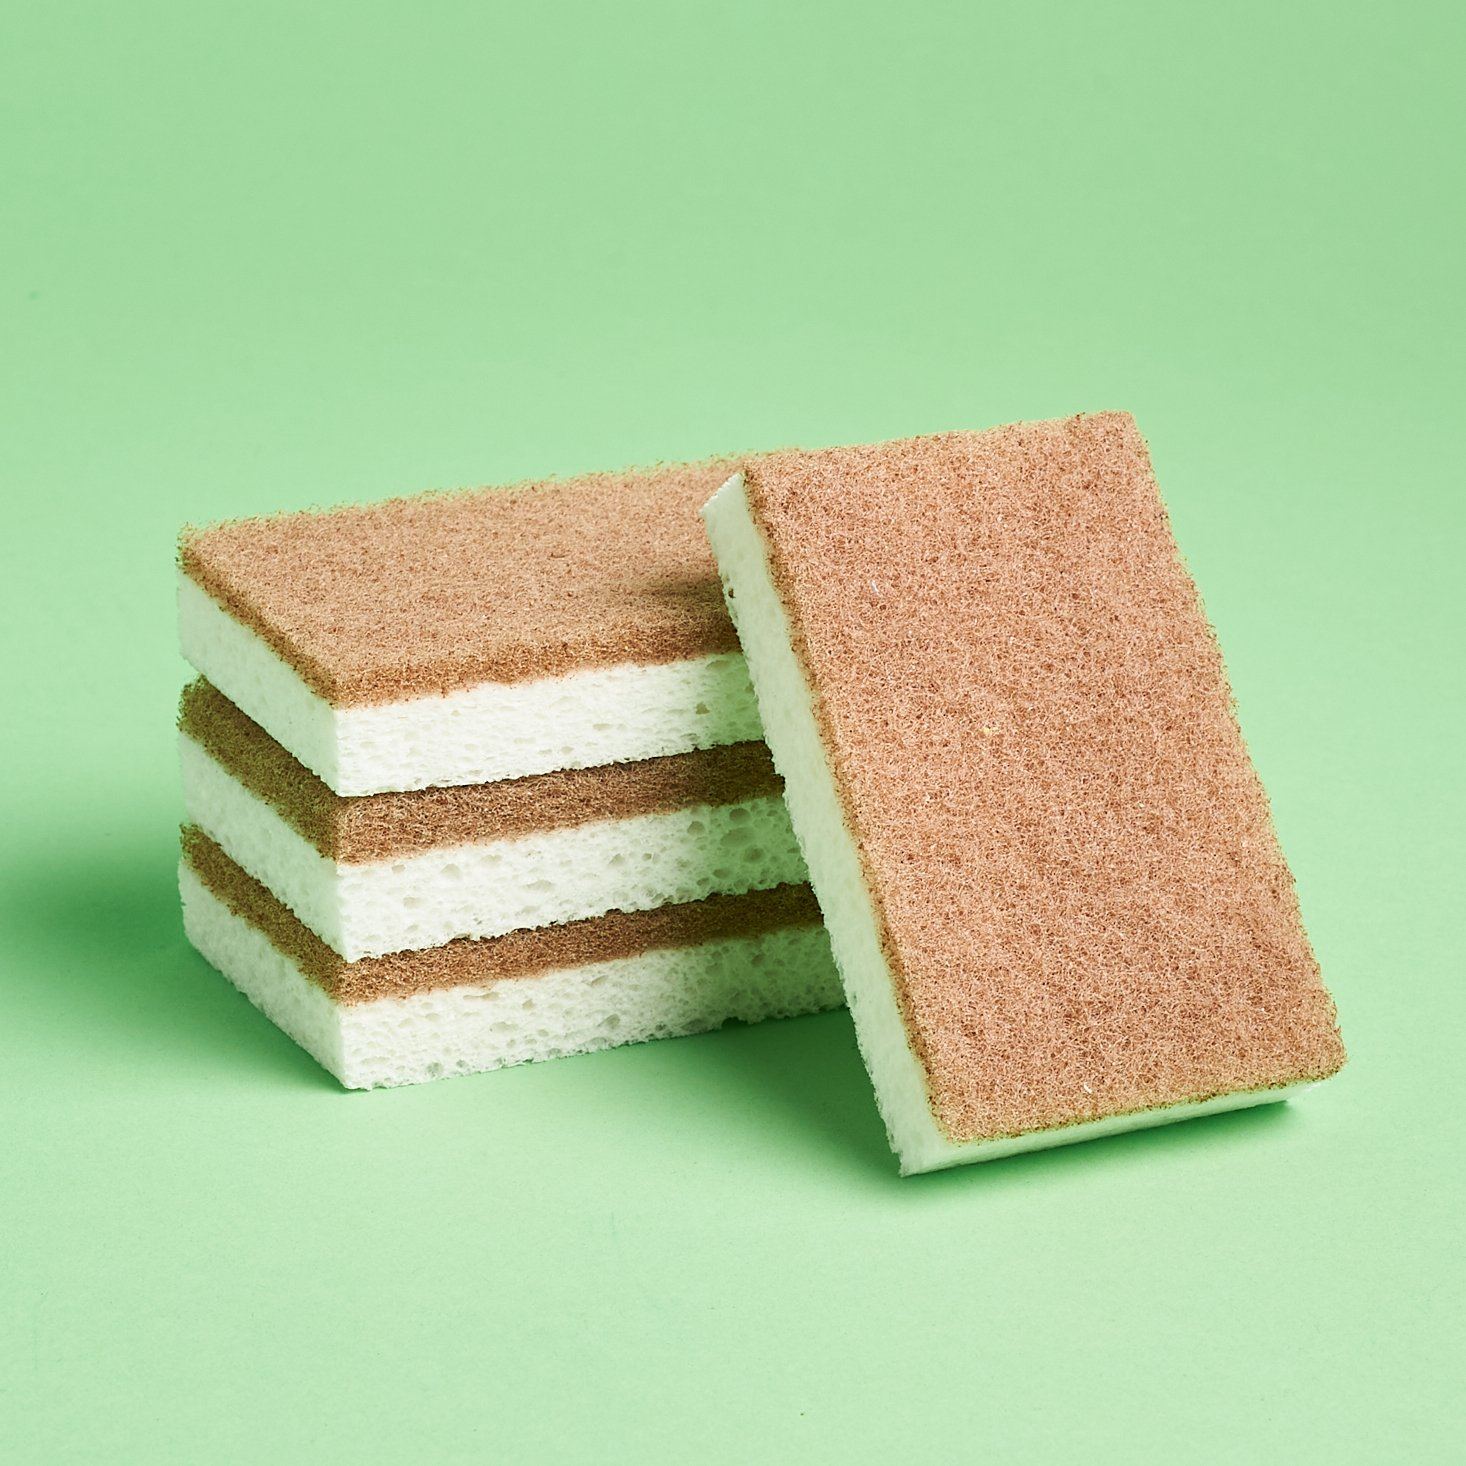 Public Goods Scrubber Sponges out of package with one sponge leaning in front